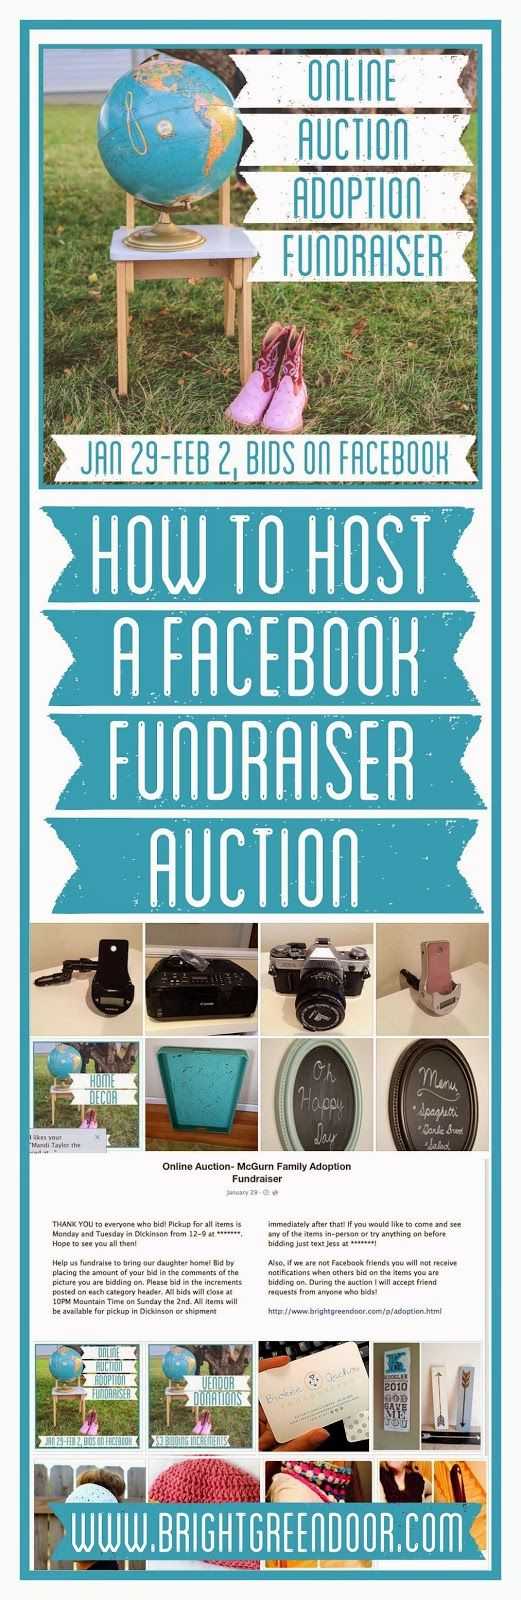 How to Host a Facebook Auction Fundraiser